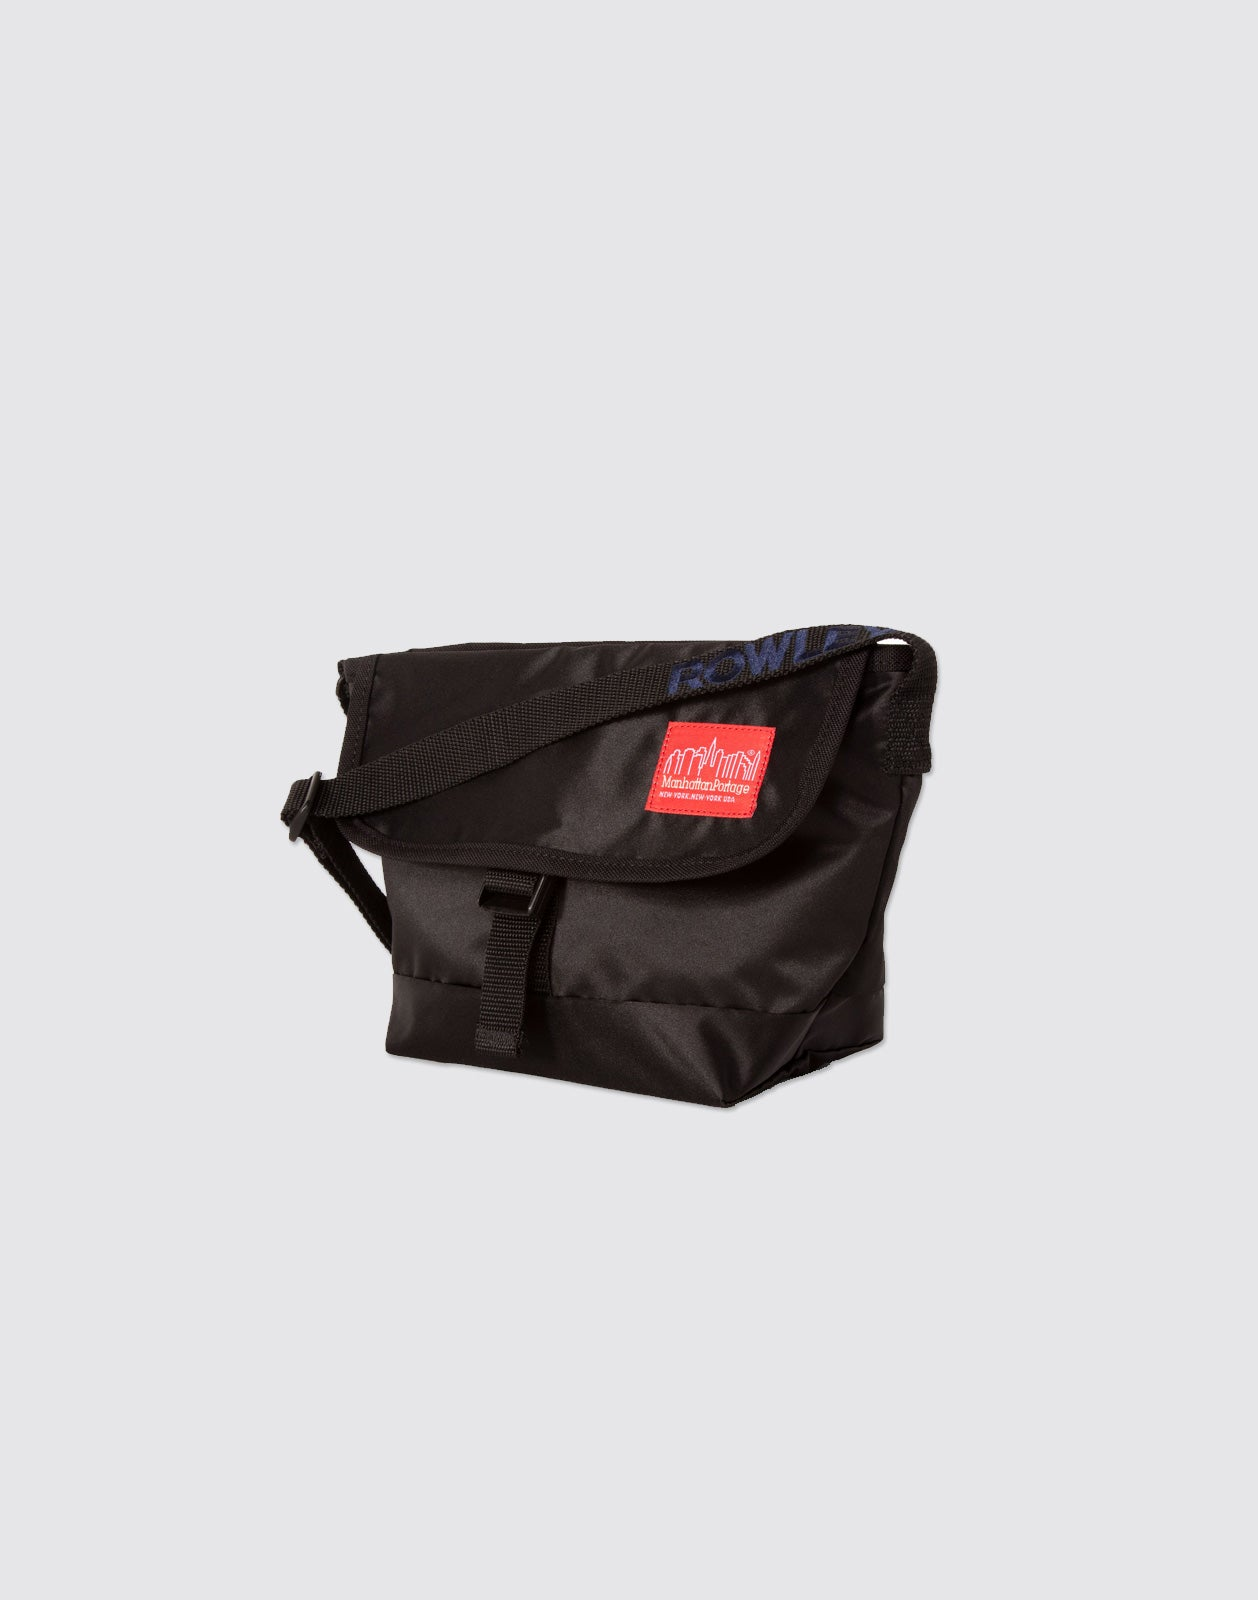 Diagonal side shot of Black Mini Manhattan Portage Messenger Bag with front buckle and arm strap.